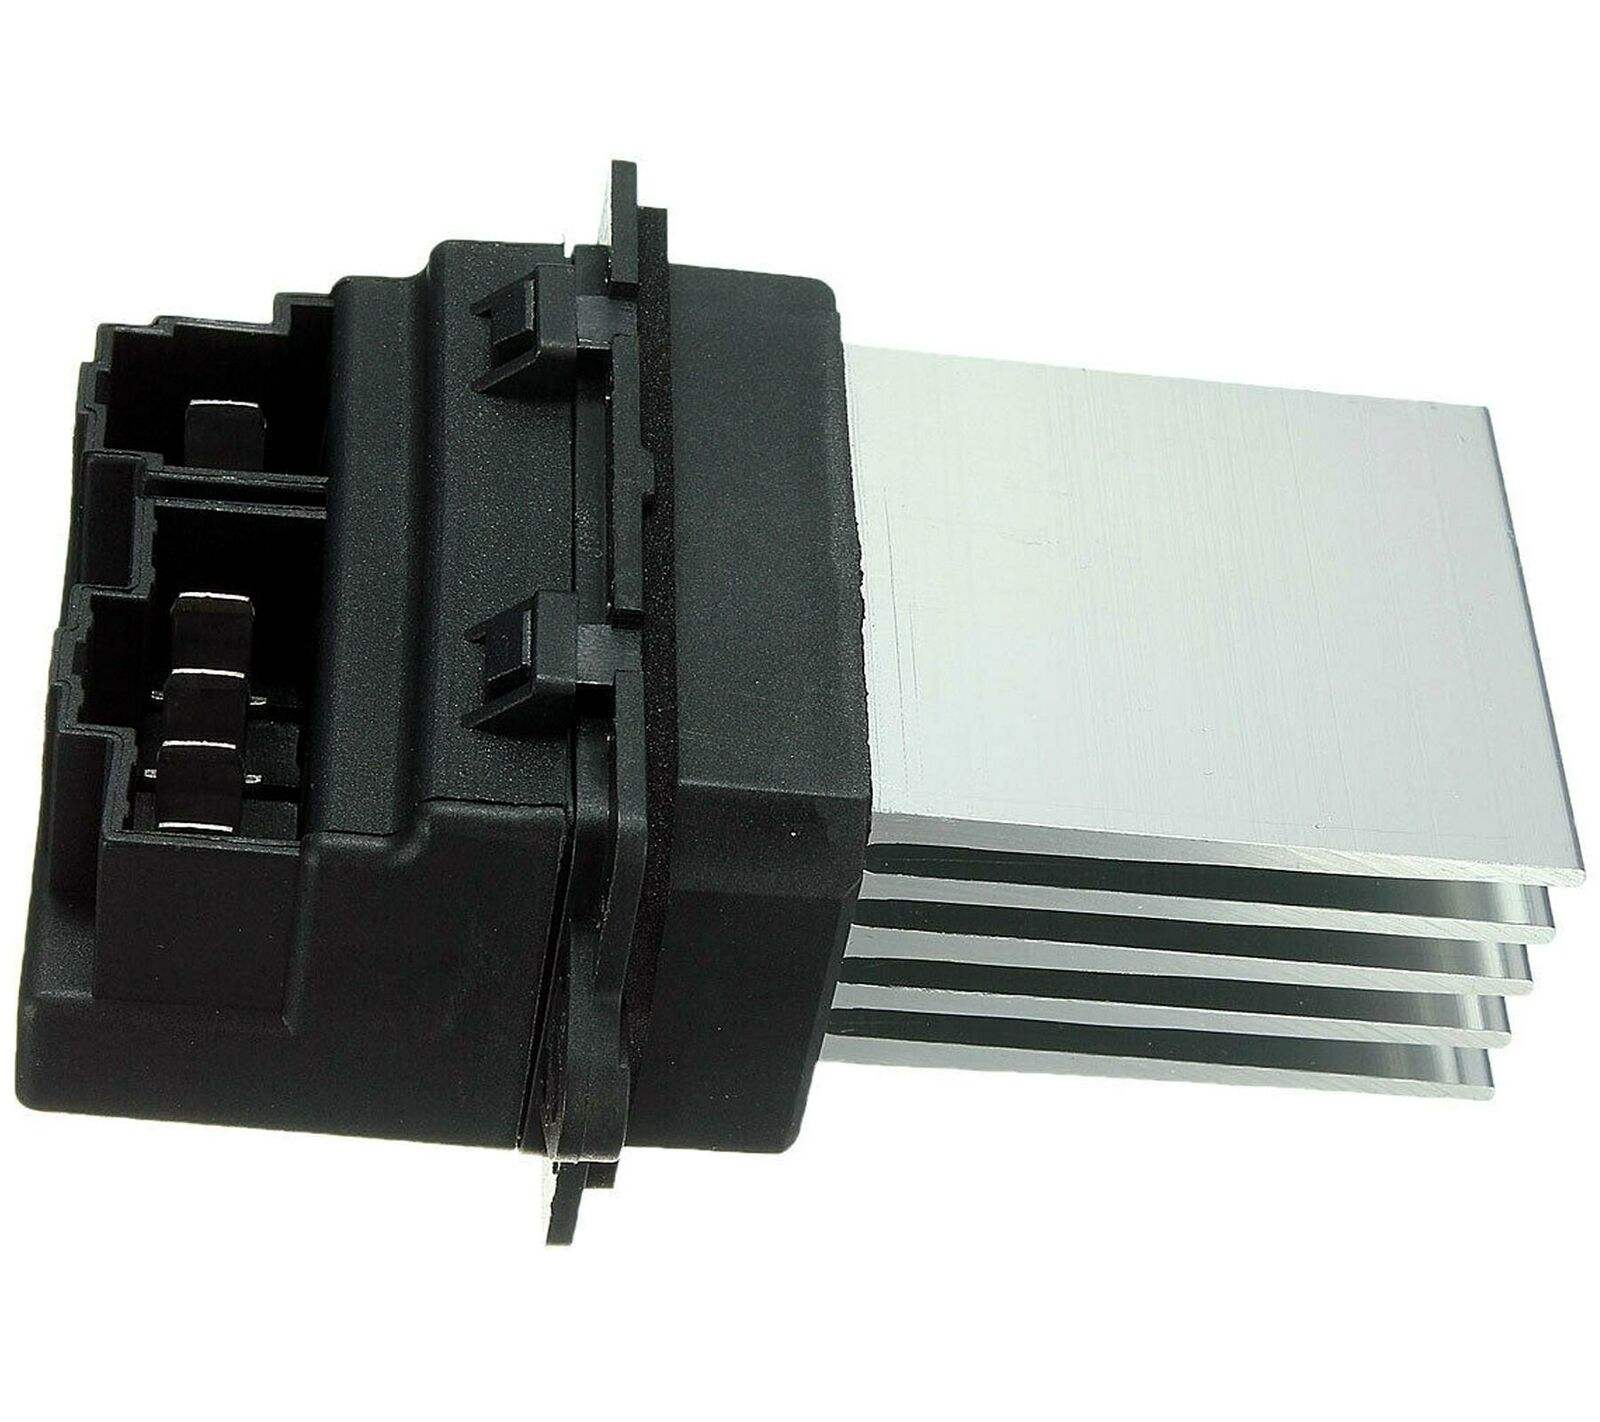 Auto <span class=keywords><strong>teile</strong></span> Heater Blower Regulator Control einheit OEM 4885482 4885482AA 973-027